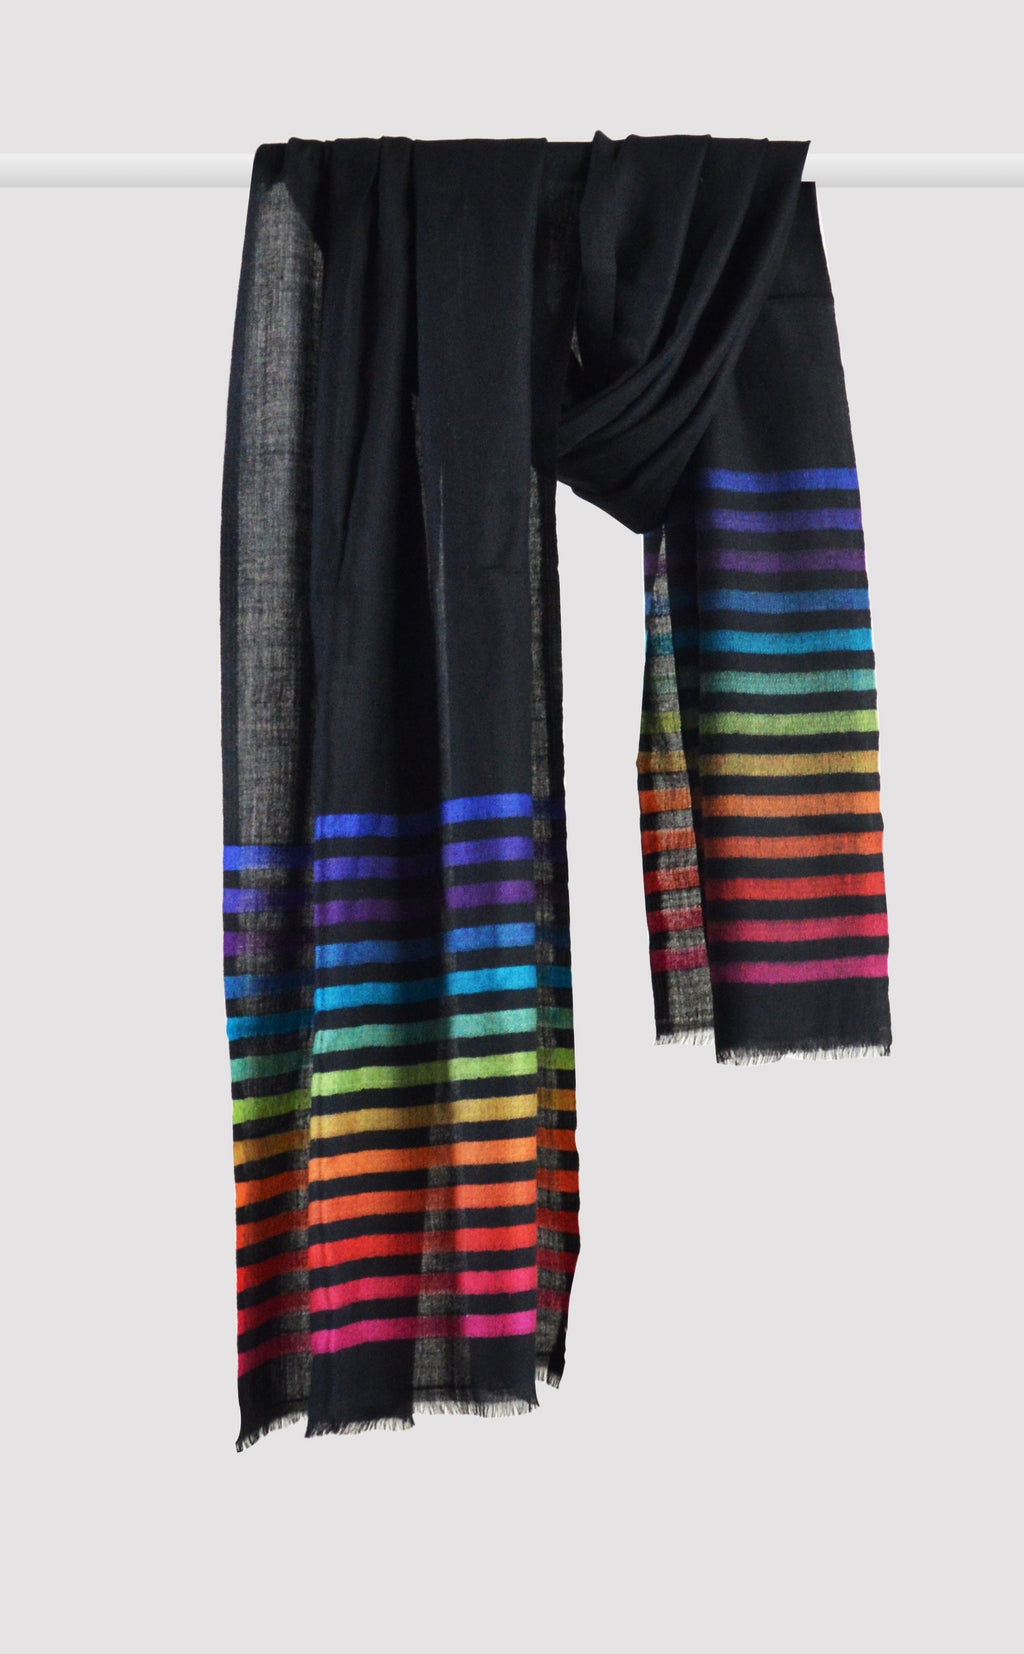 Merino Stripes Black Rainbow